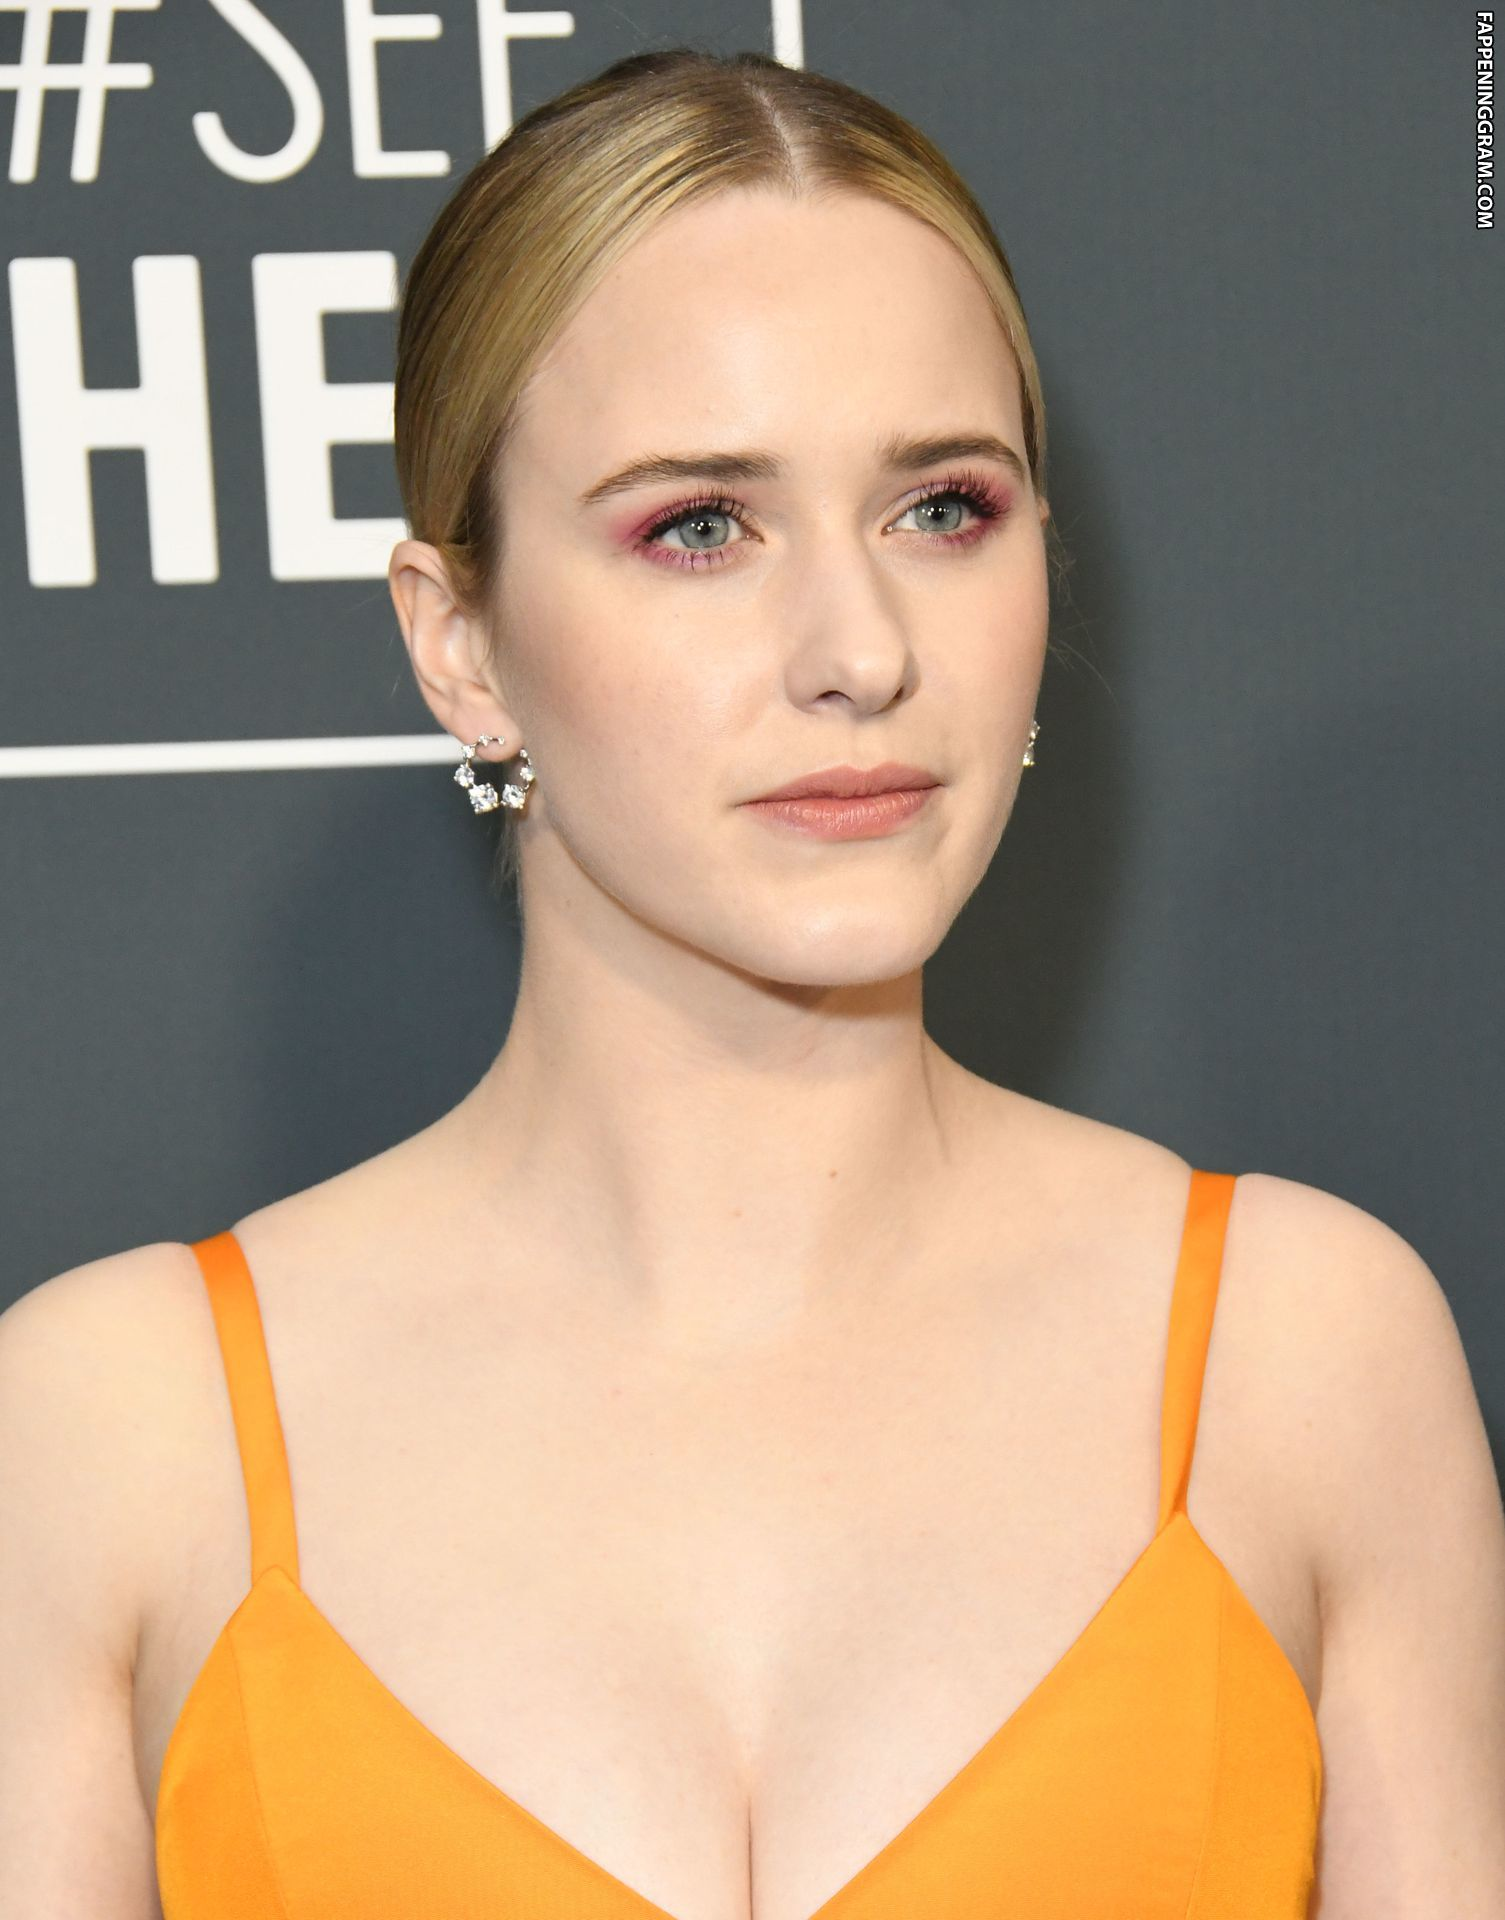 Rachel Brosnahan Nude The Fappening - Page 3 - FappeningGram